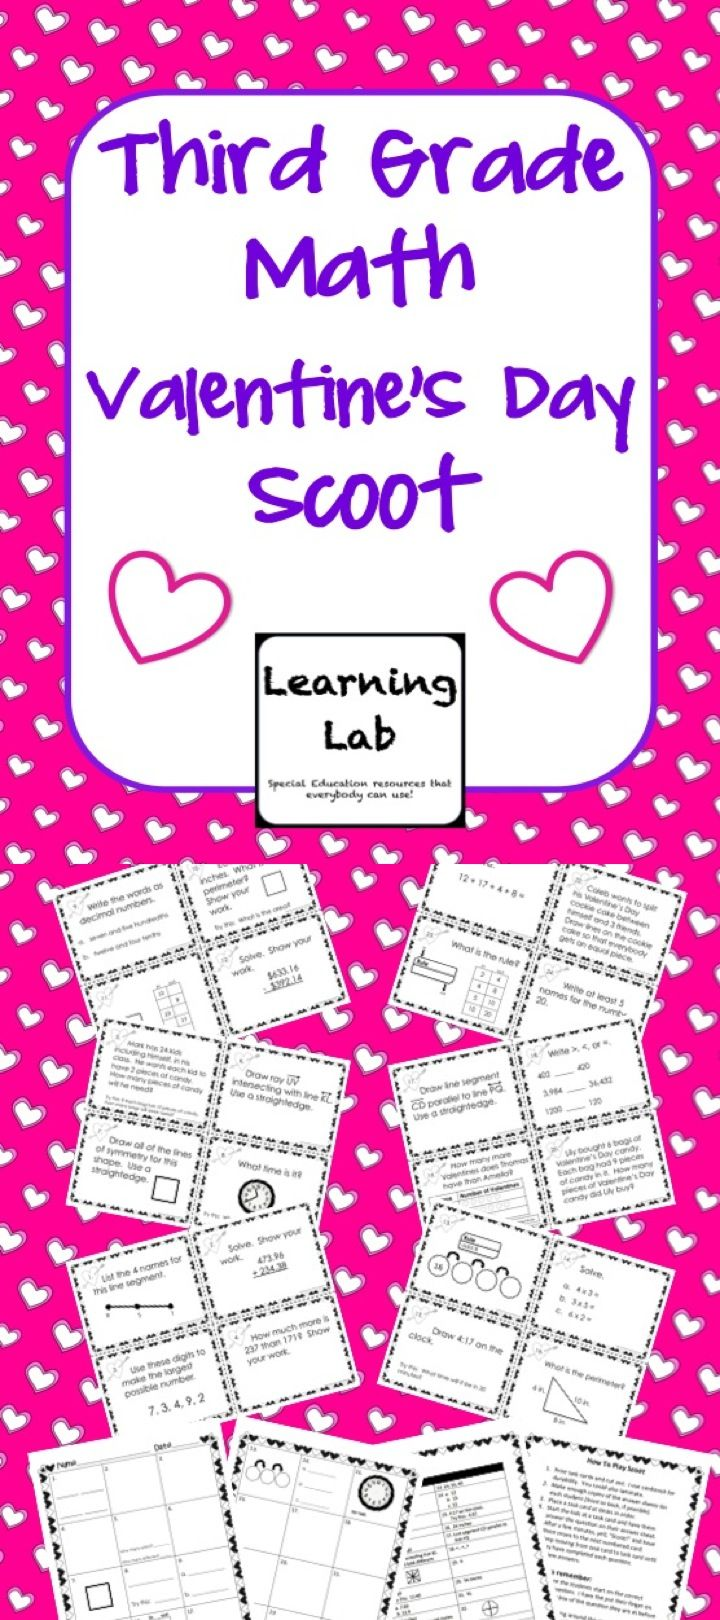 This Valentine's Day themed math scoot game reviews third grade skills from up until this point of the school year using the Everyday Mathematics program.